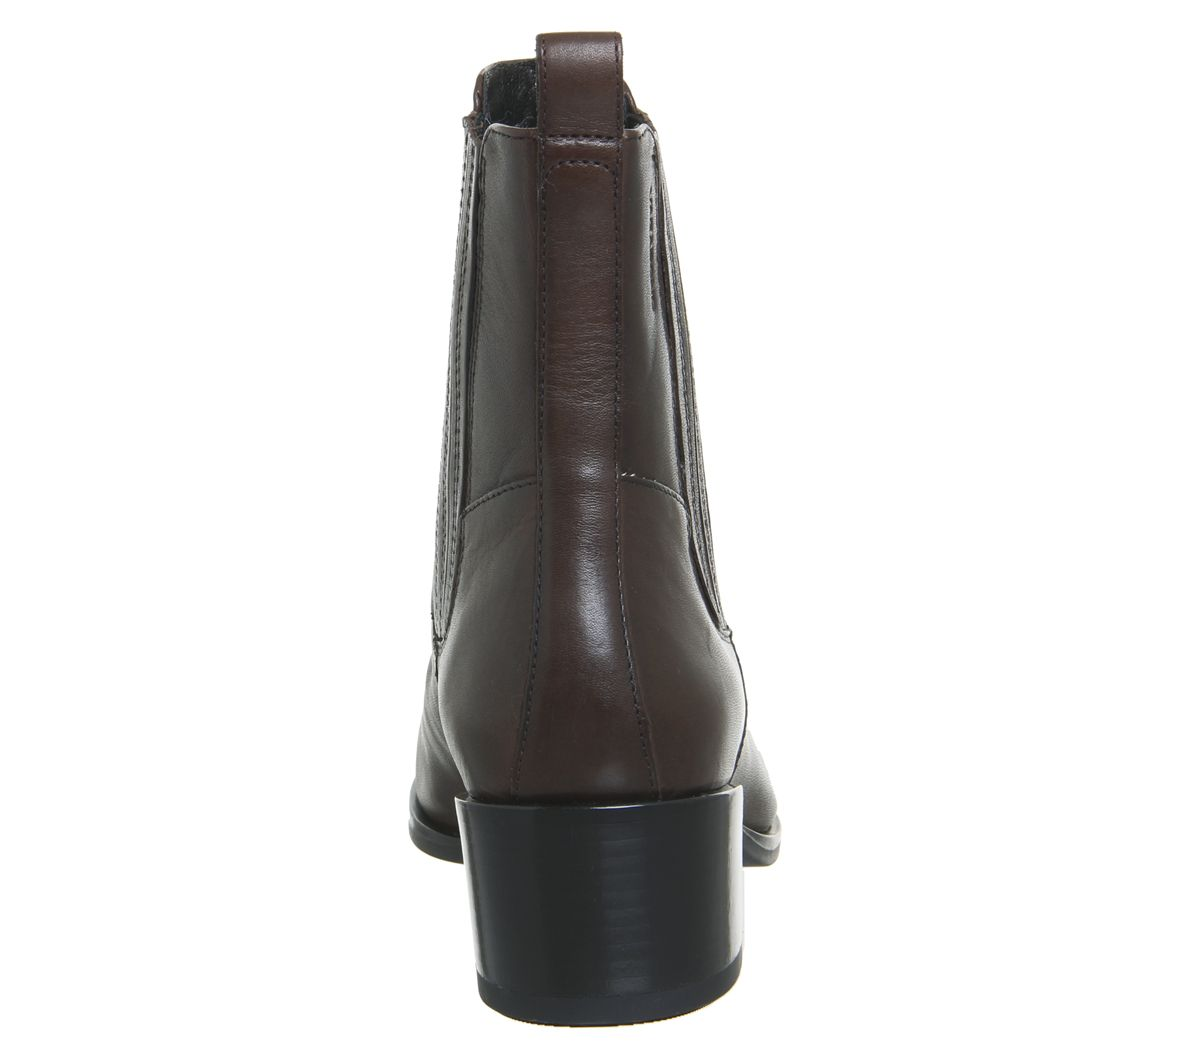 a622c1929eebf7 Vagabond Marja Chelsea Boot Espresso Leather - Ankle Boots